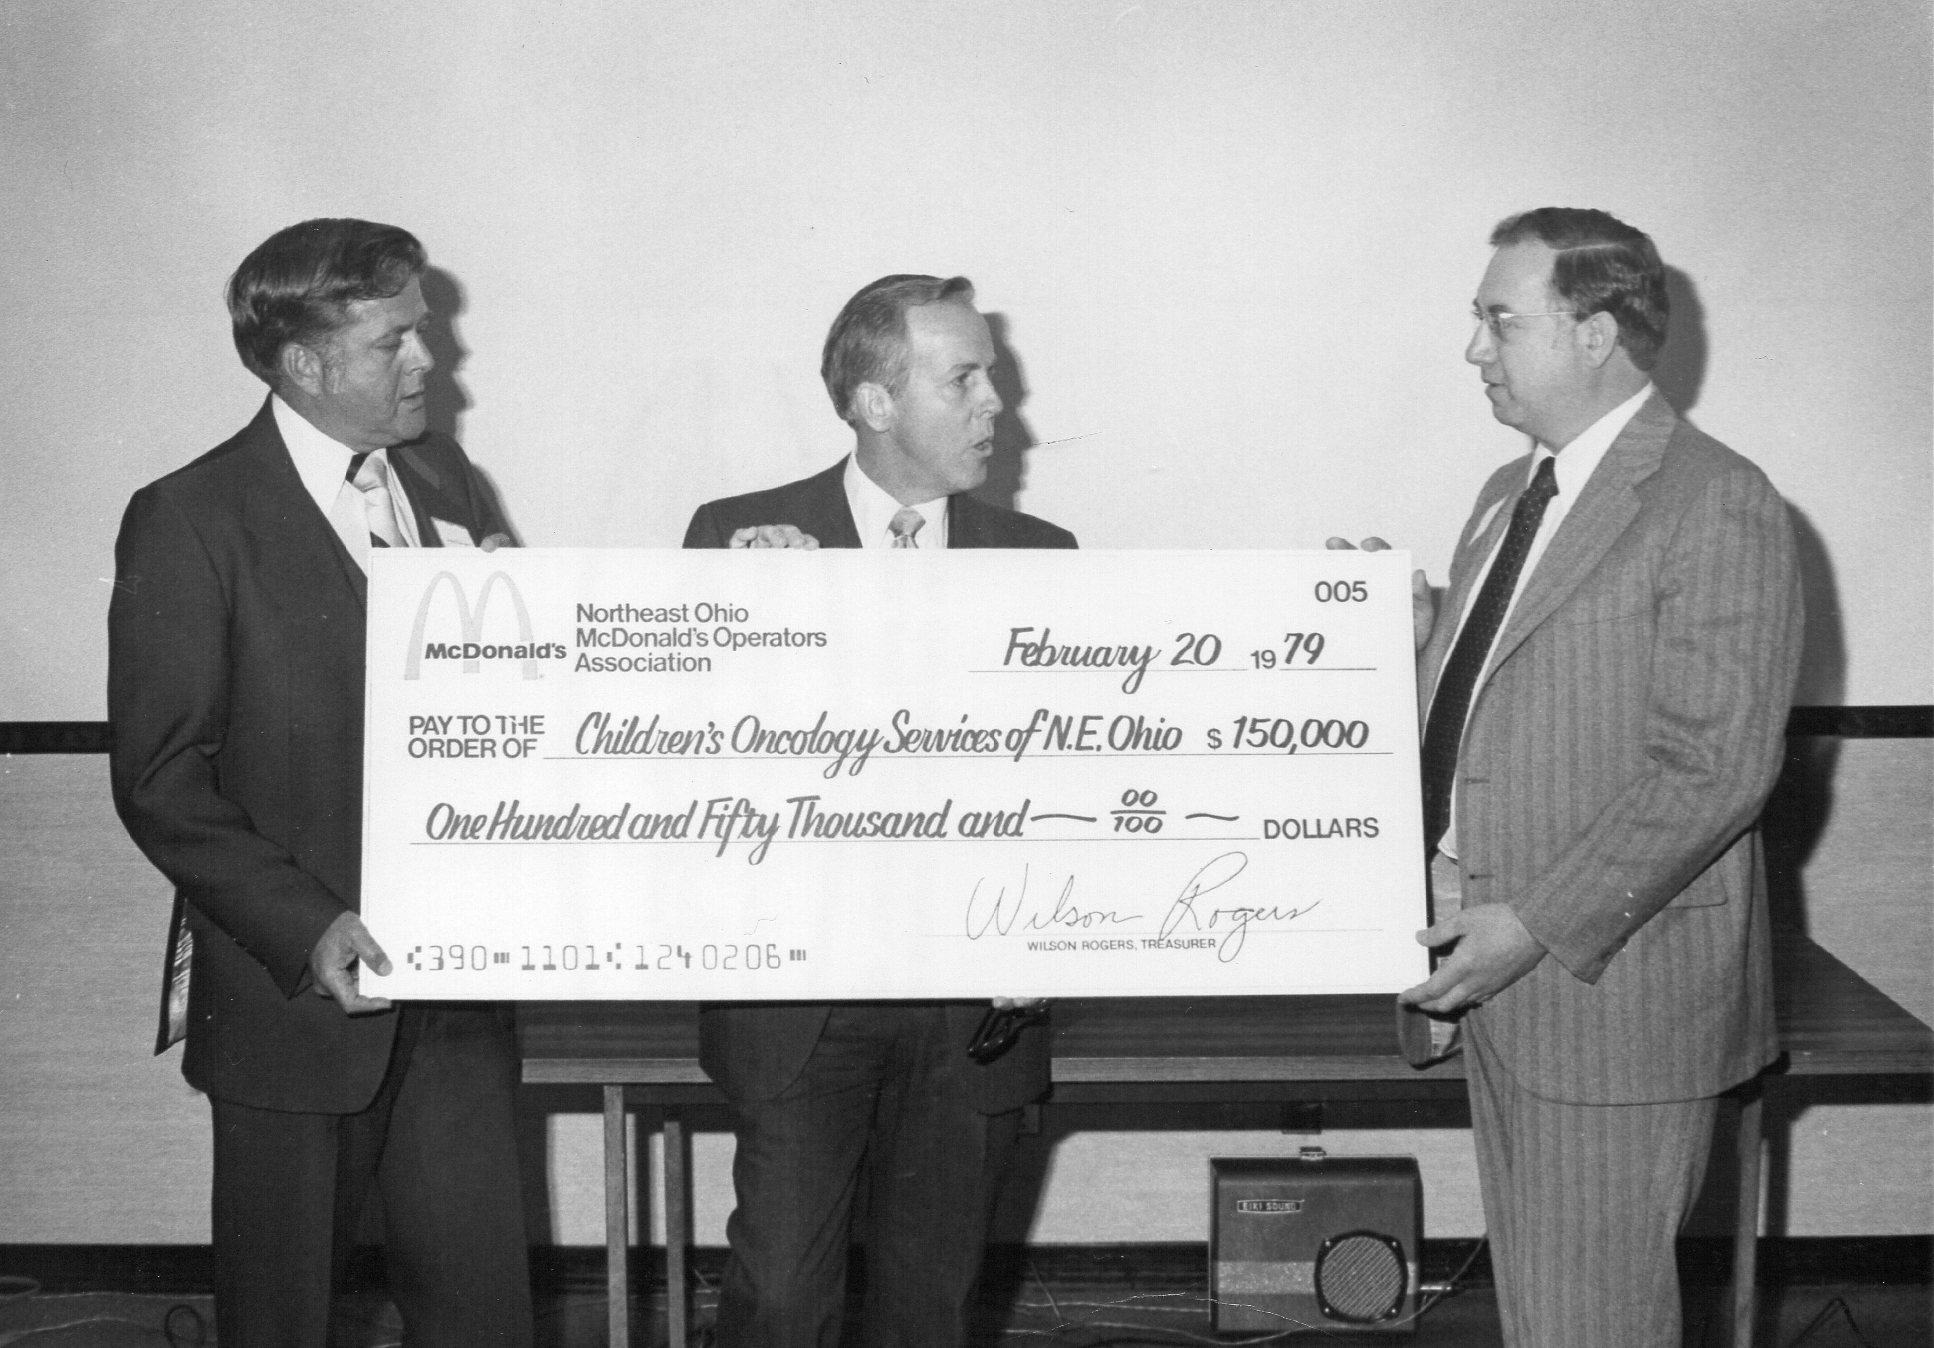 February 20, 1979, from left: Joseph Benden, president of the Northeast Ohio McDonald's Operators Association; Don Smith, McDonald's owner/operator and VP of Children's Oncology Services of Northeast Ohio (COSNO, RMH founding organization); Stephen Zayac, president of COSNO.